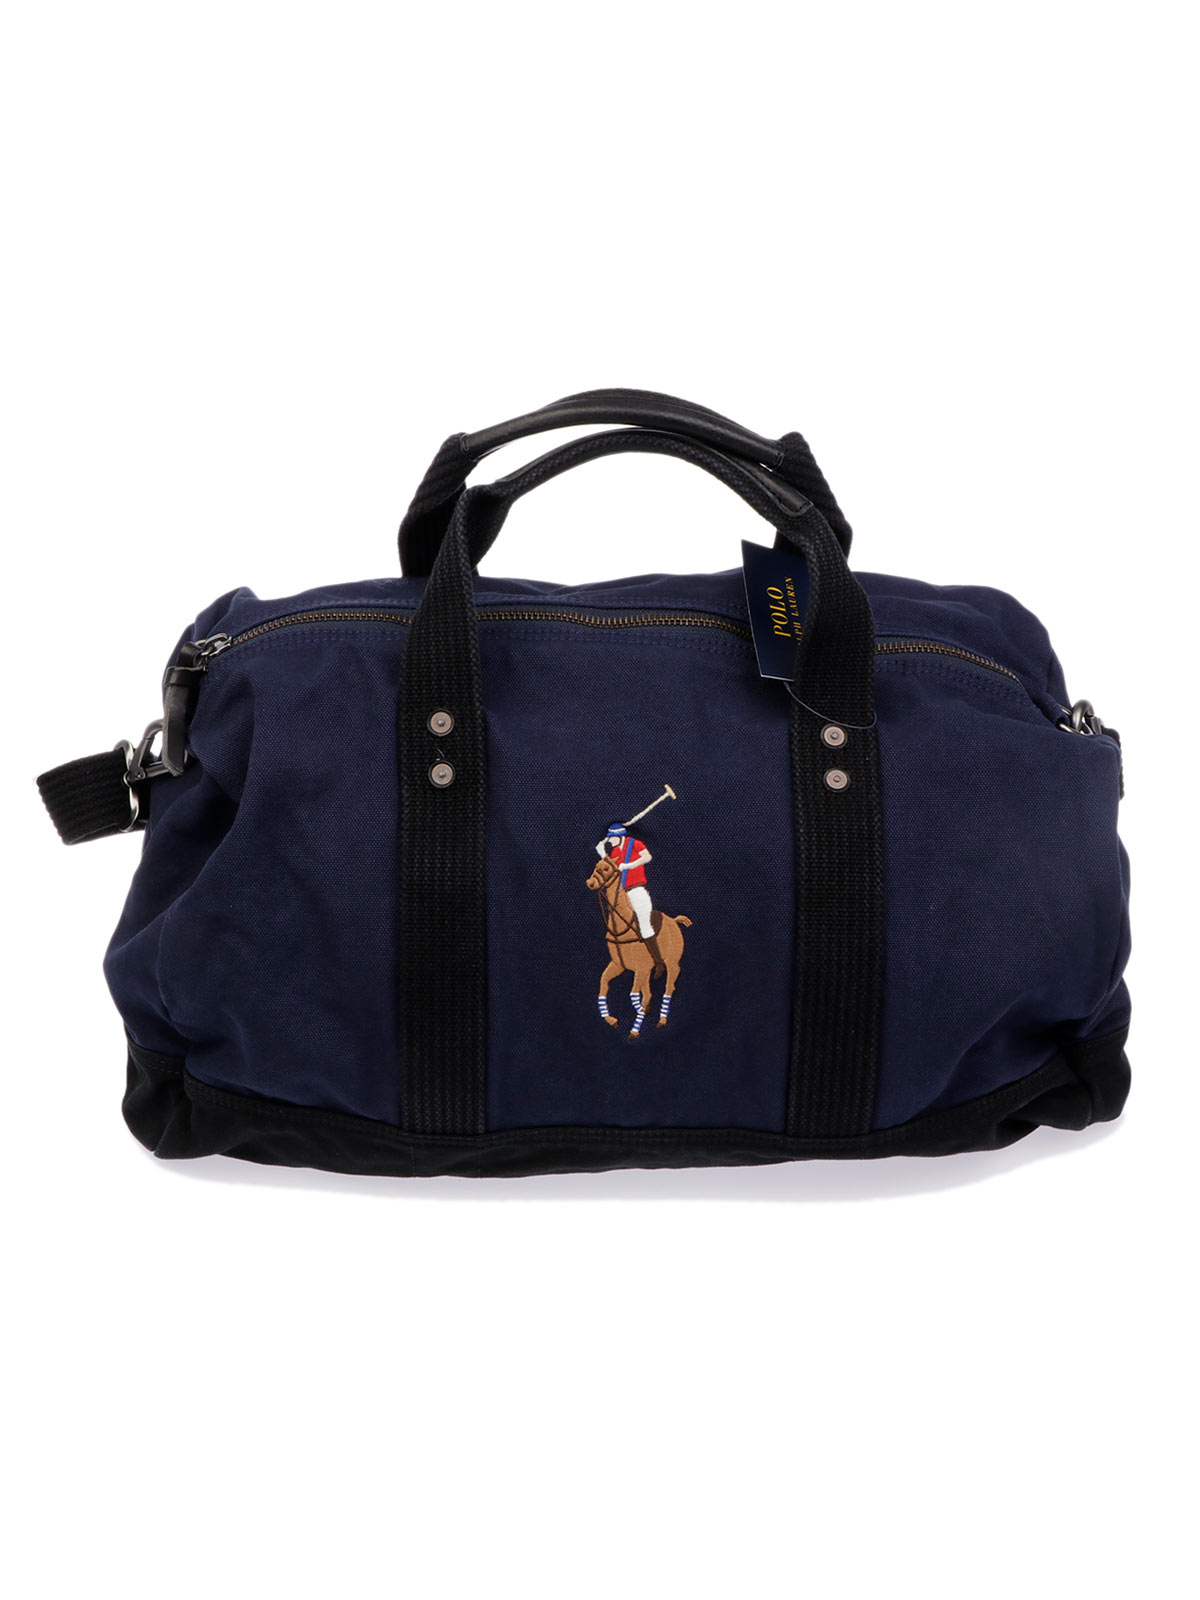 77cad72963a4 POLO RALPH LAUREN Men s Canvas Duffle Bag Navy